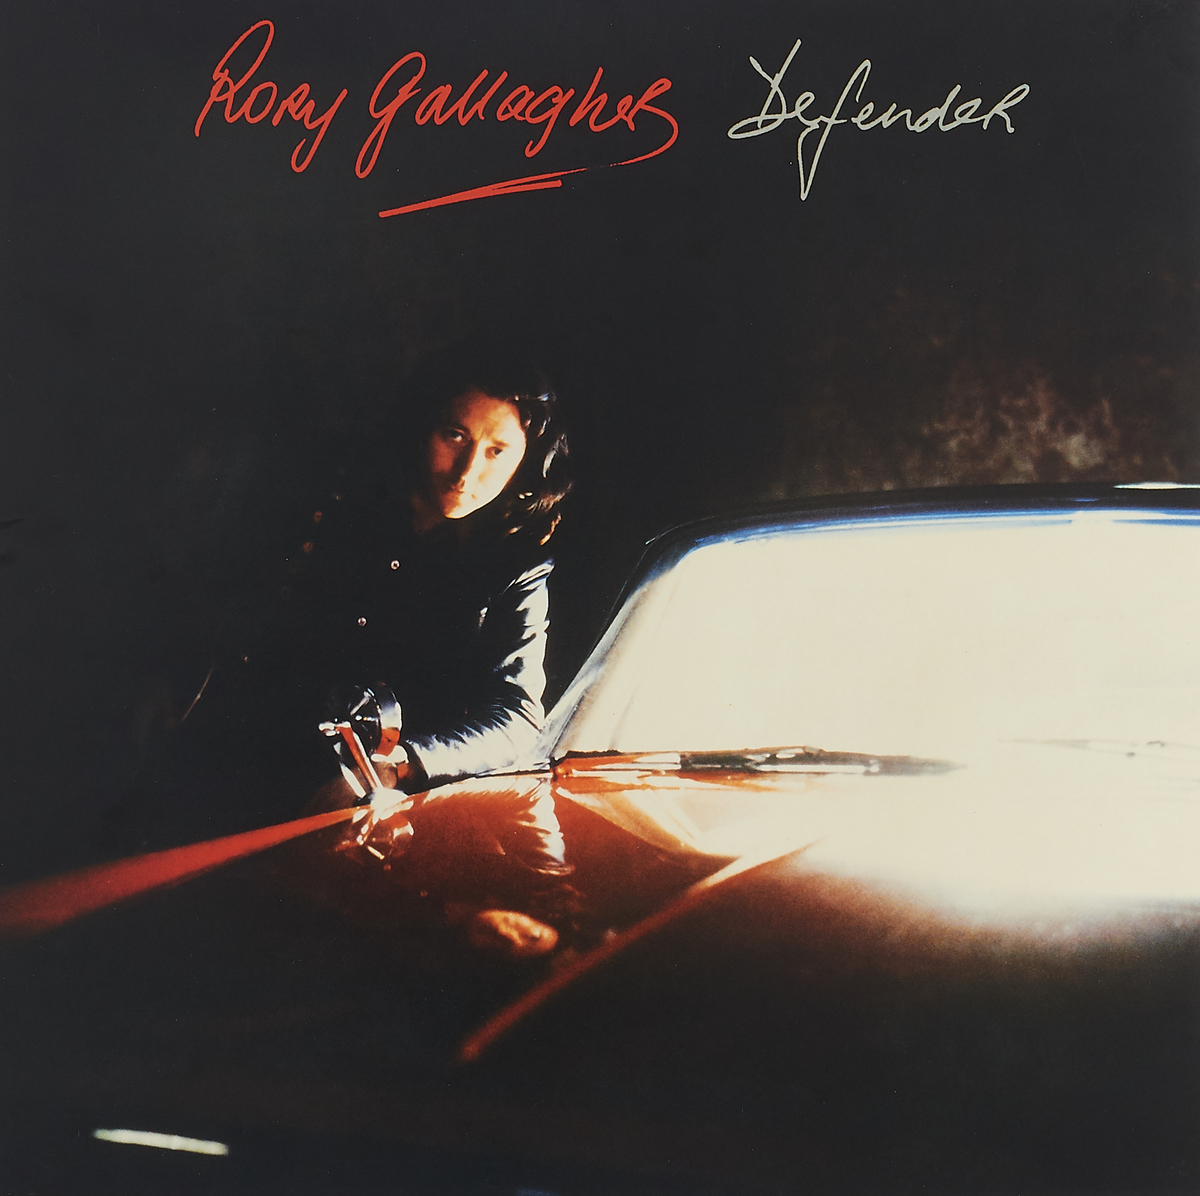 Рори Галлахер Rory Gallagher. Defender (LP) рори галлахер gallagher rory live in europe hq lp